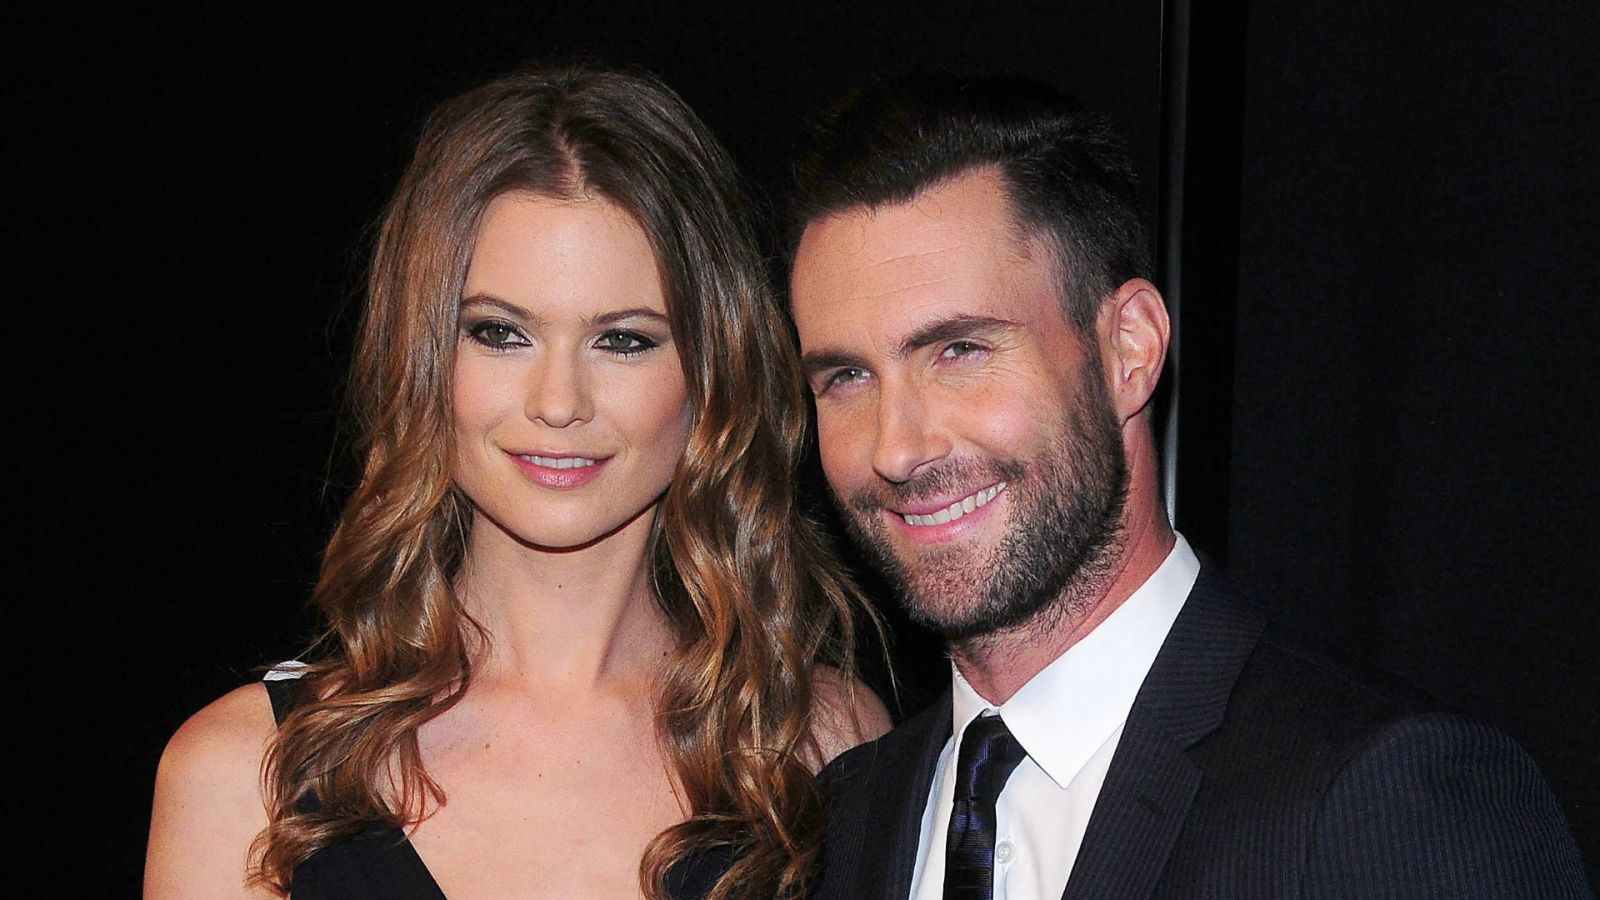 Oscar Winners 2009 Jennifer Aniston 378762 likewise Watch besides Jennifer Lopez Gets Wicked Lacy Black Gown Keith Urban S Love Nicole Kidman Brings Wild Leopard Print American Idol Grand Finale moreover Shawn Mendes Illuminate Album Stream Download Listen Now as well Best Frida Kahlo Quotes. on red carpet watch online